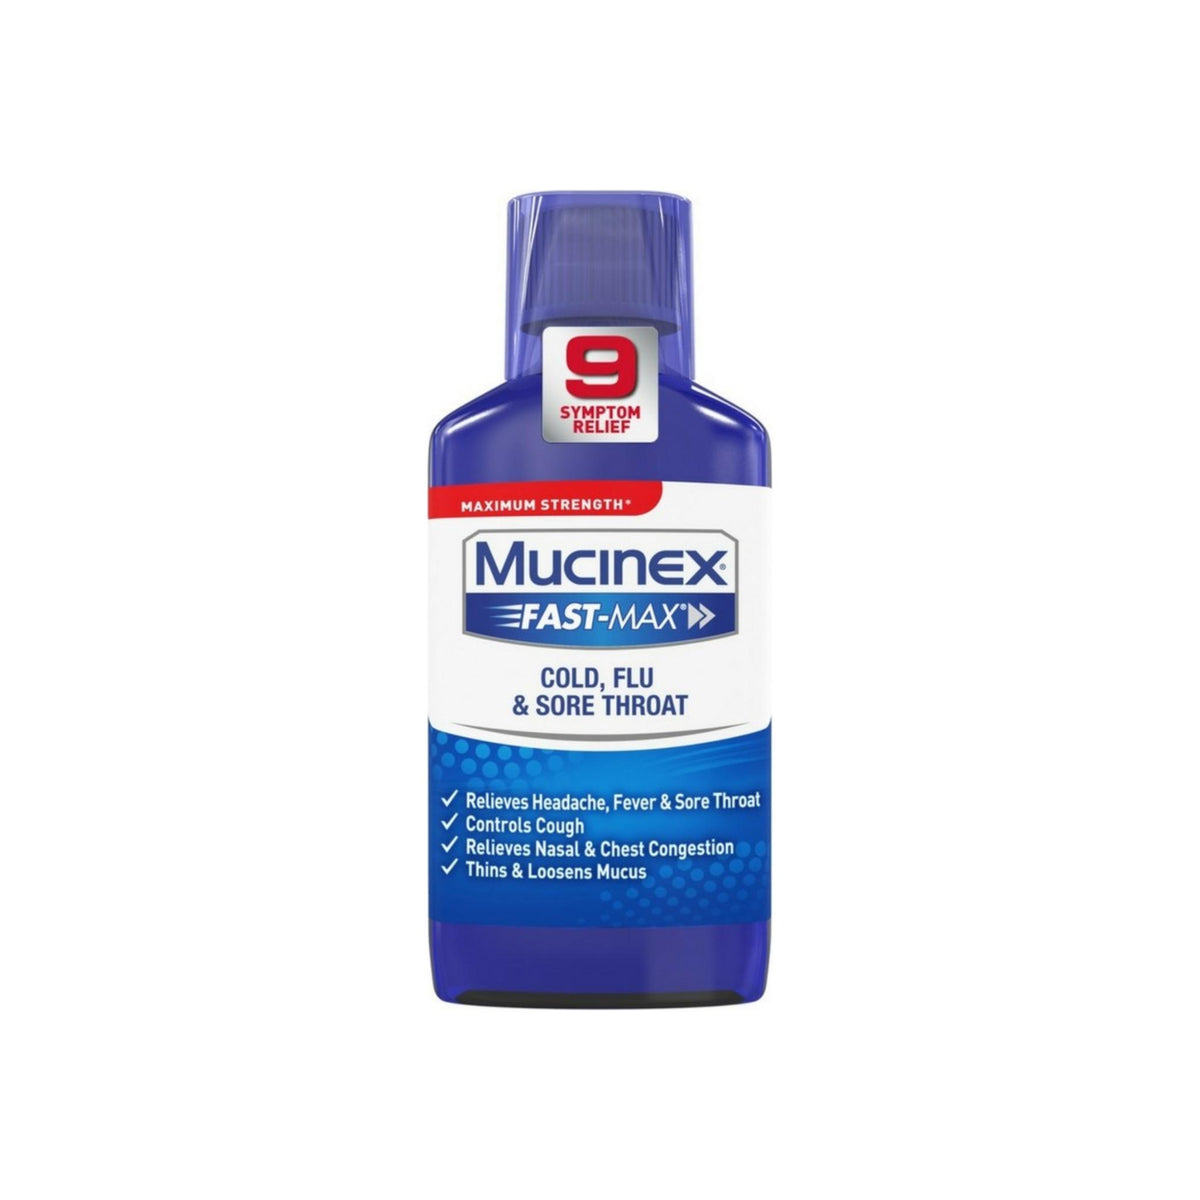 Mucinex Fast-Max Adult Cold, Flu And Sore Throat Liquid, 6